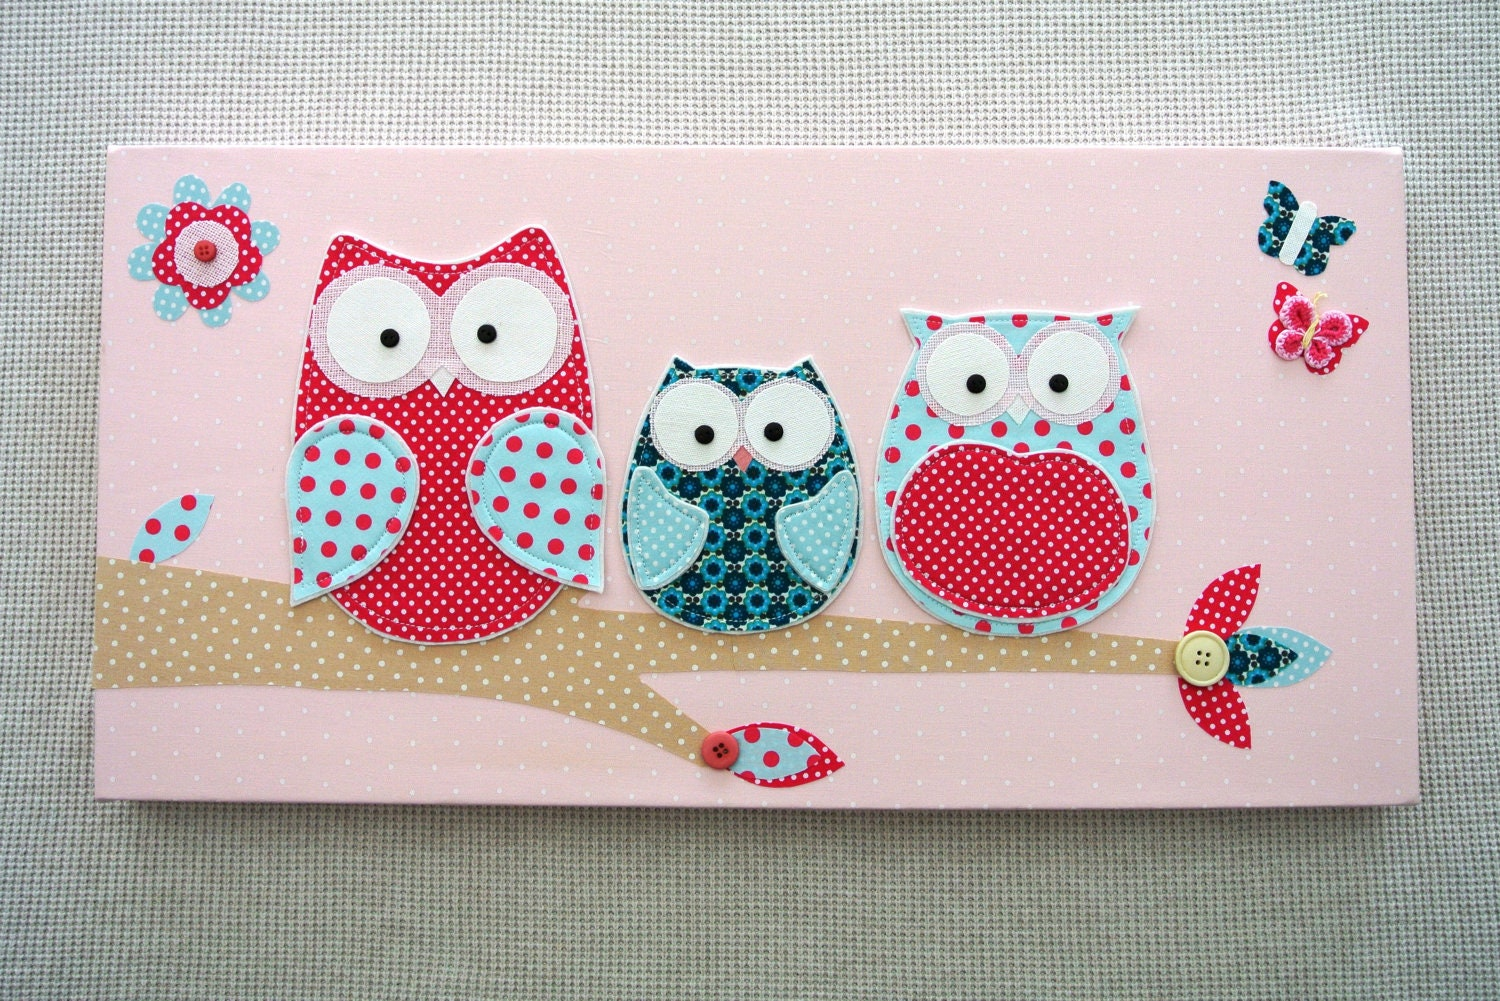 Cute Owl Decor For Baby Room